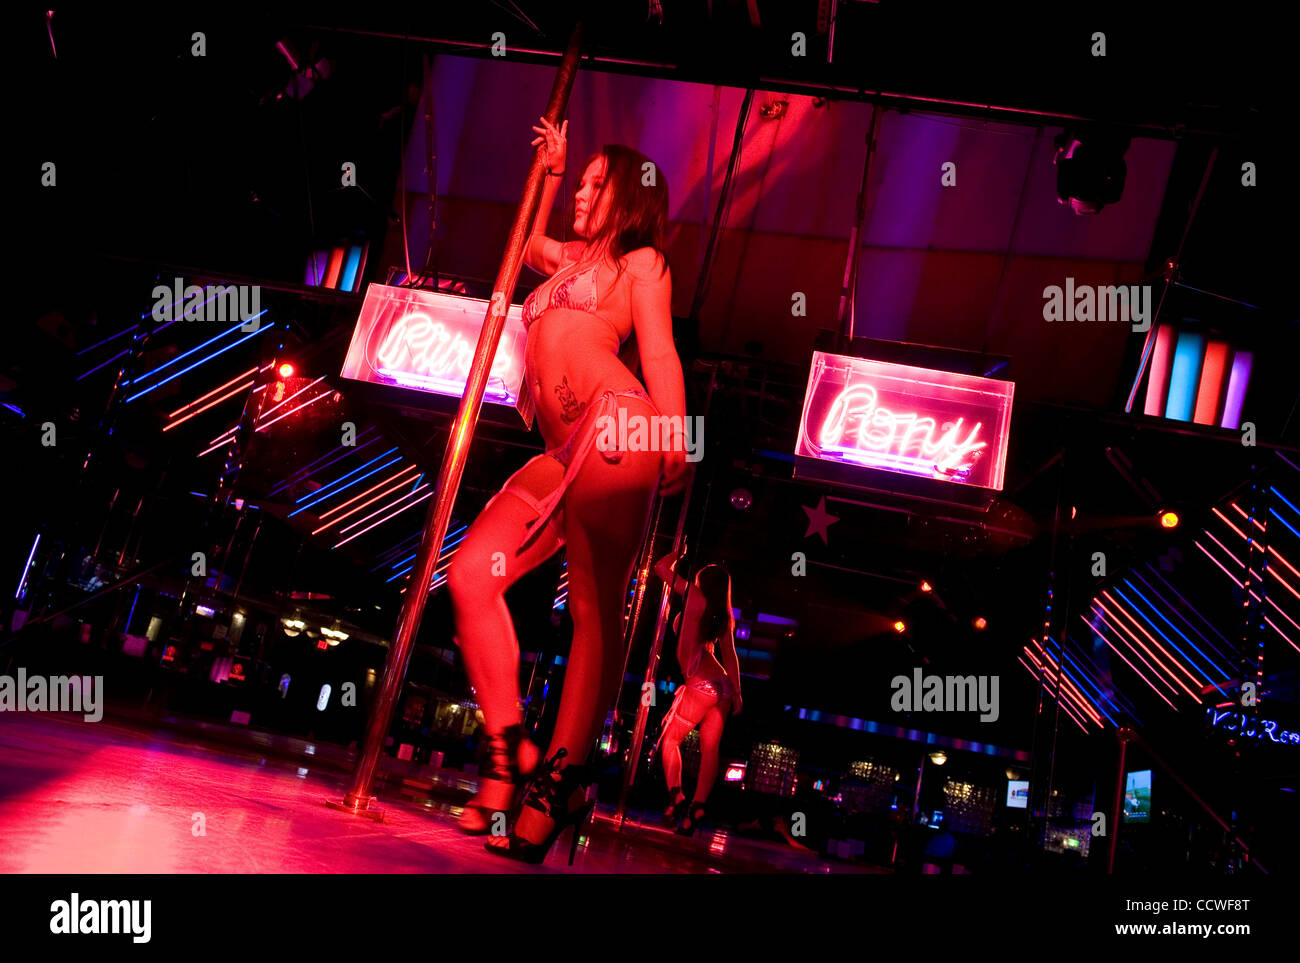 Ebenholz Atlanta Strip Club